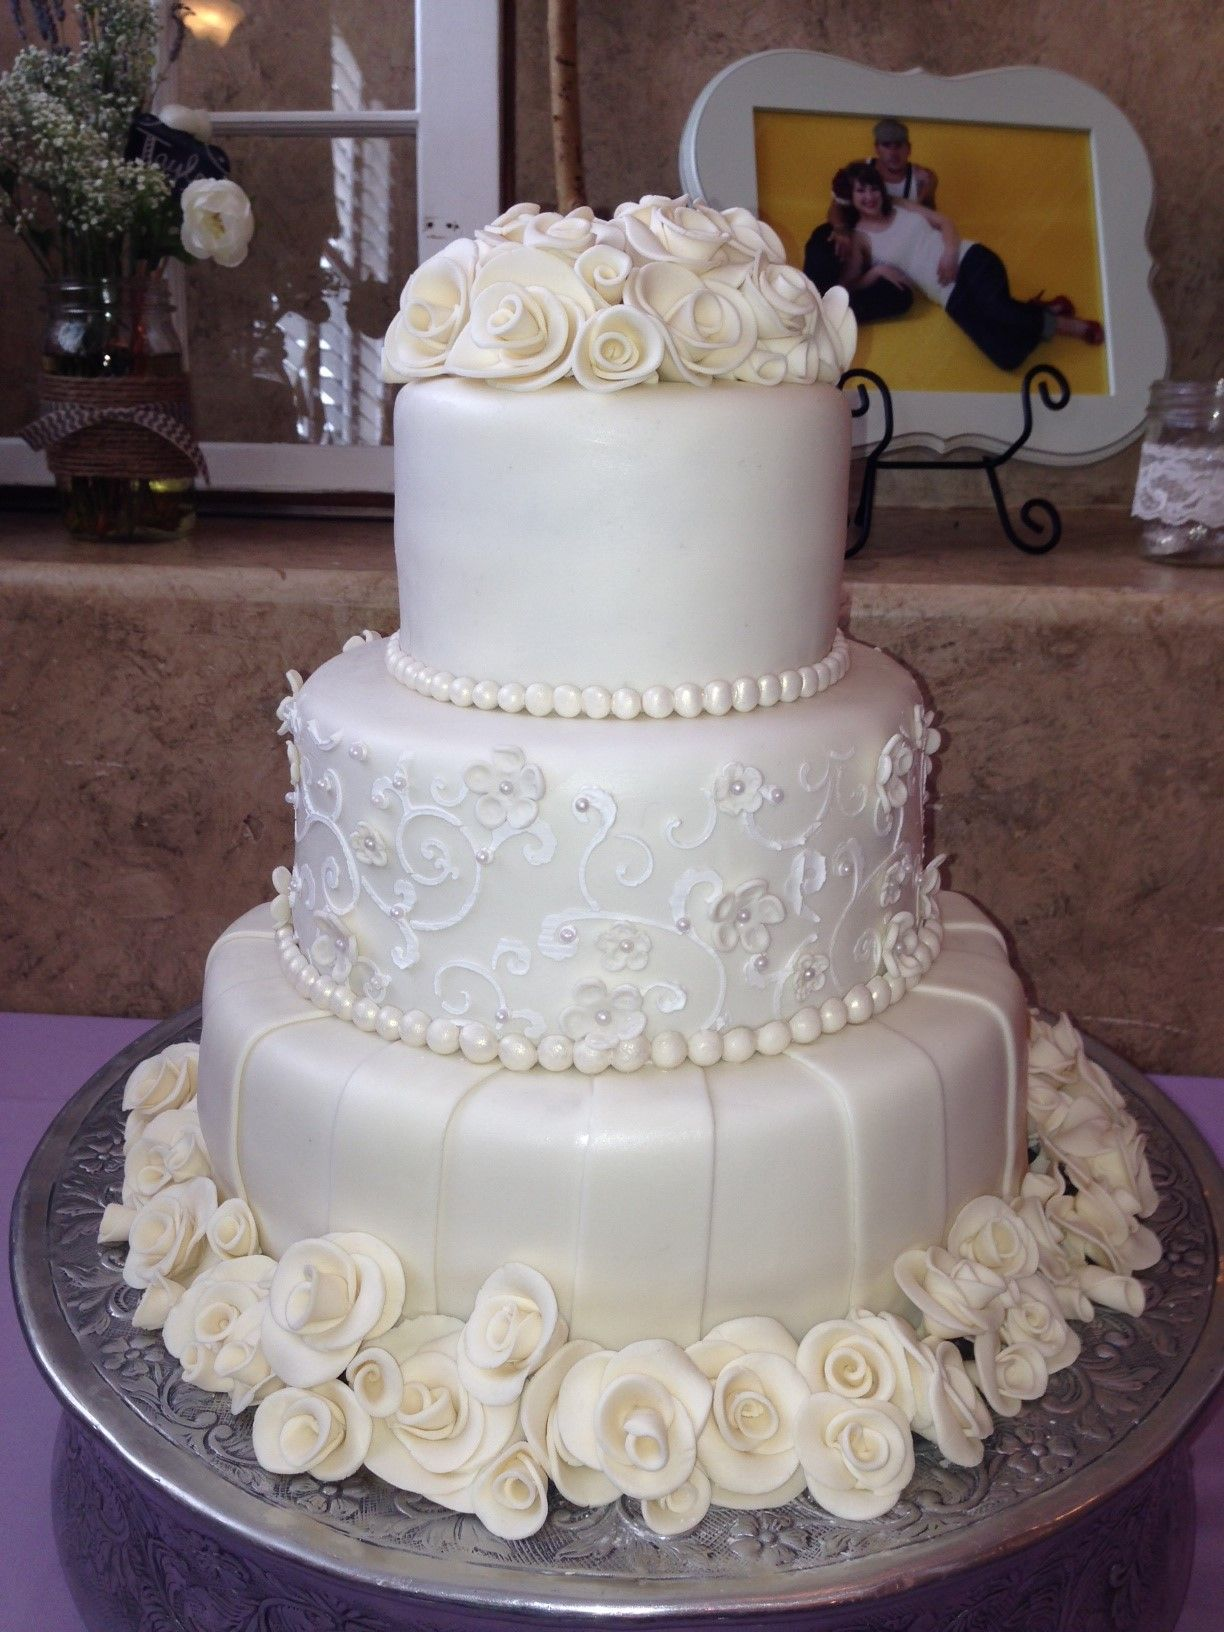 Beautiful White Chocolate Roses top and bottom of this wedding cake ...